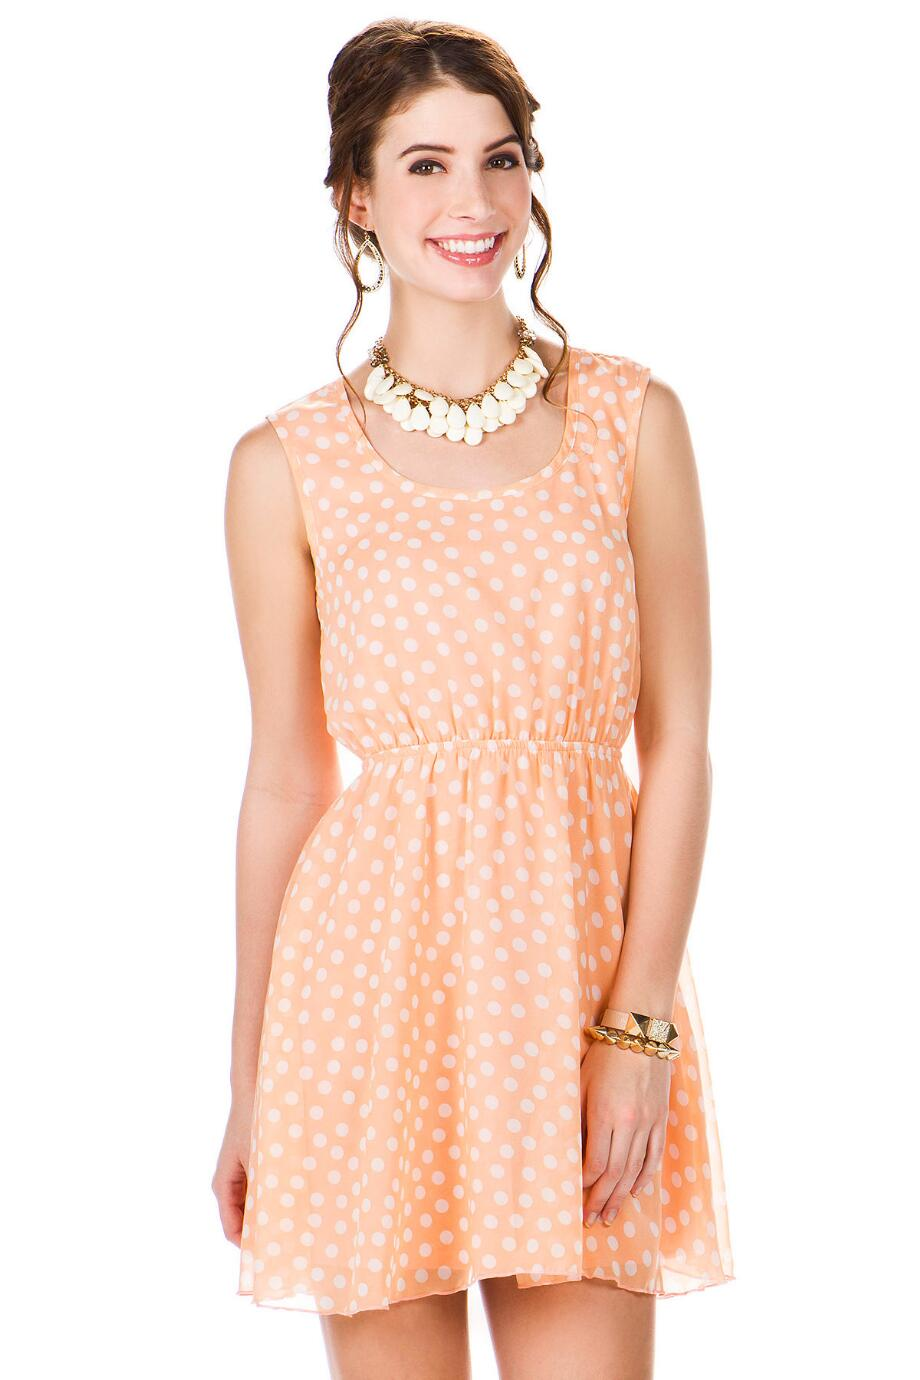 Atlanta Polka Dot Dress